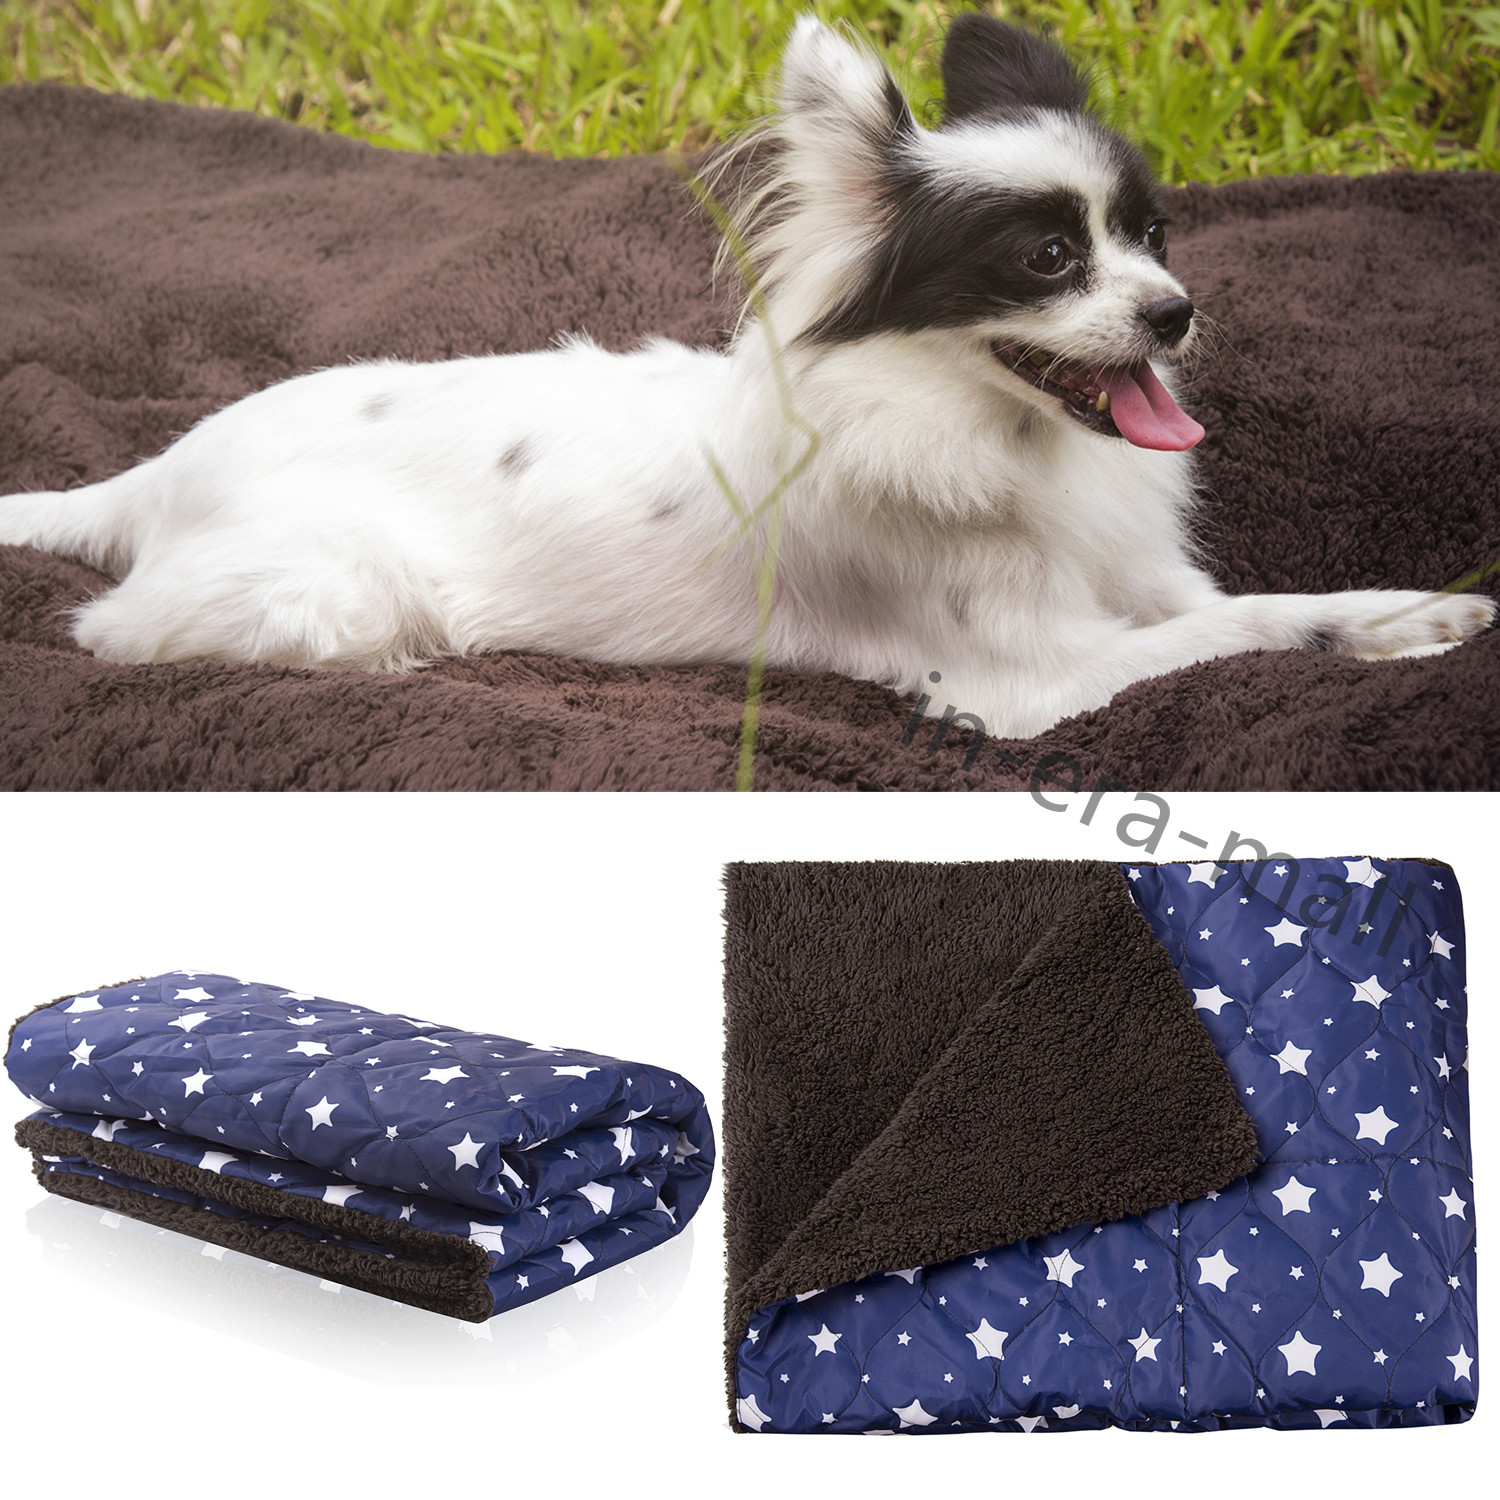 dfc319005509 Details about Pet Washable Home Blanket Large Dog Bed Cushion Mattress  Kennel Soft Crate Mat